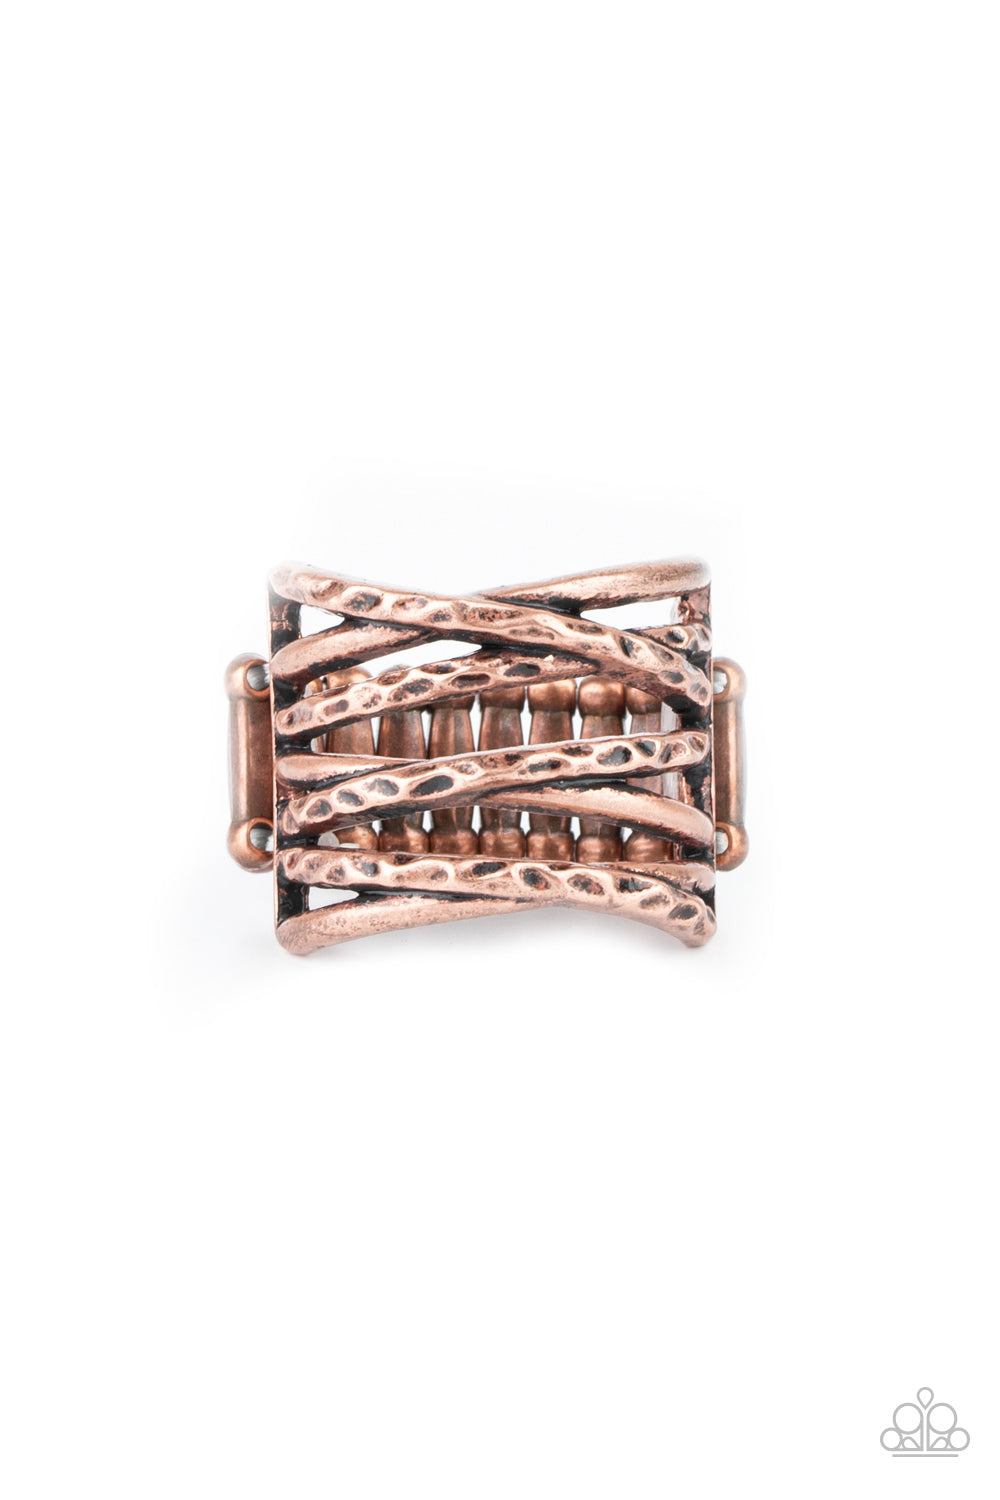 five-dollar-jewelry-switching-gears-copper-ring-paparazzi-accessories